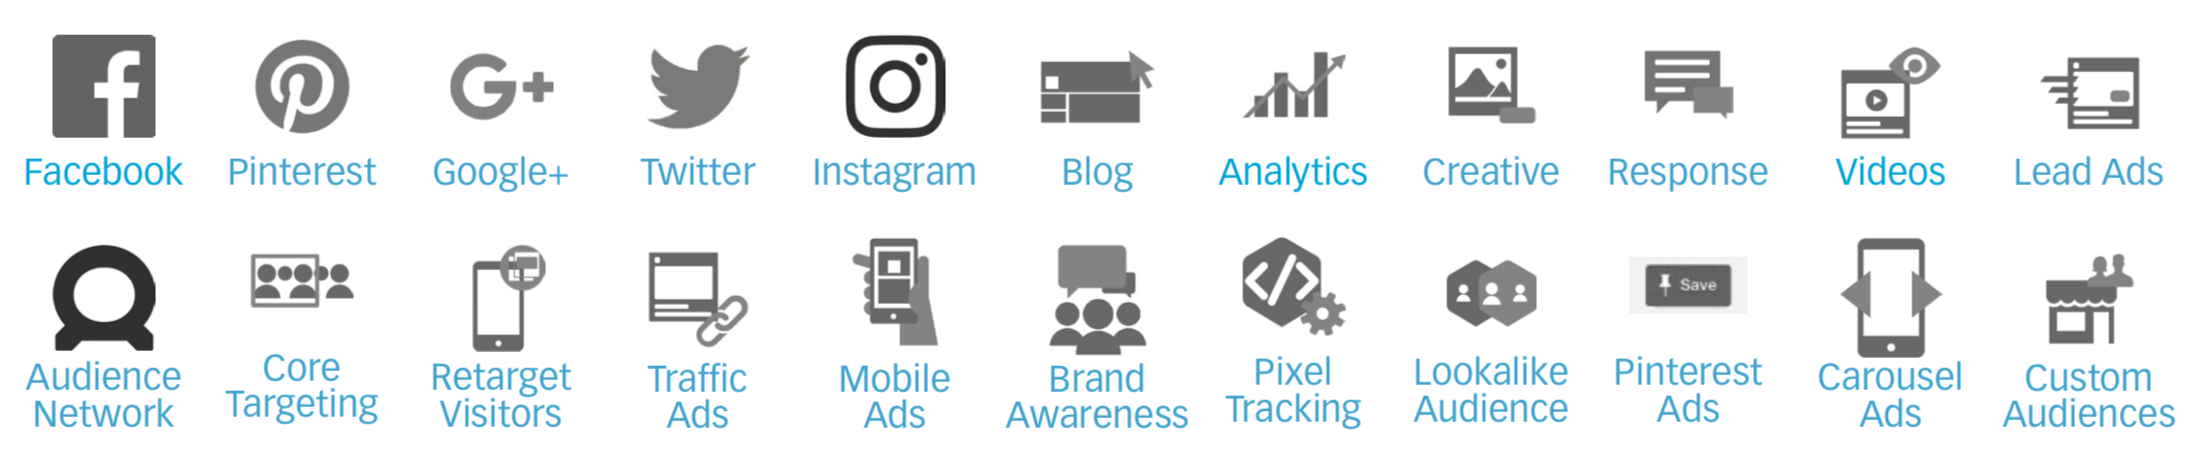 Social Media Products Used